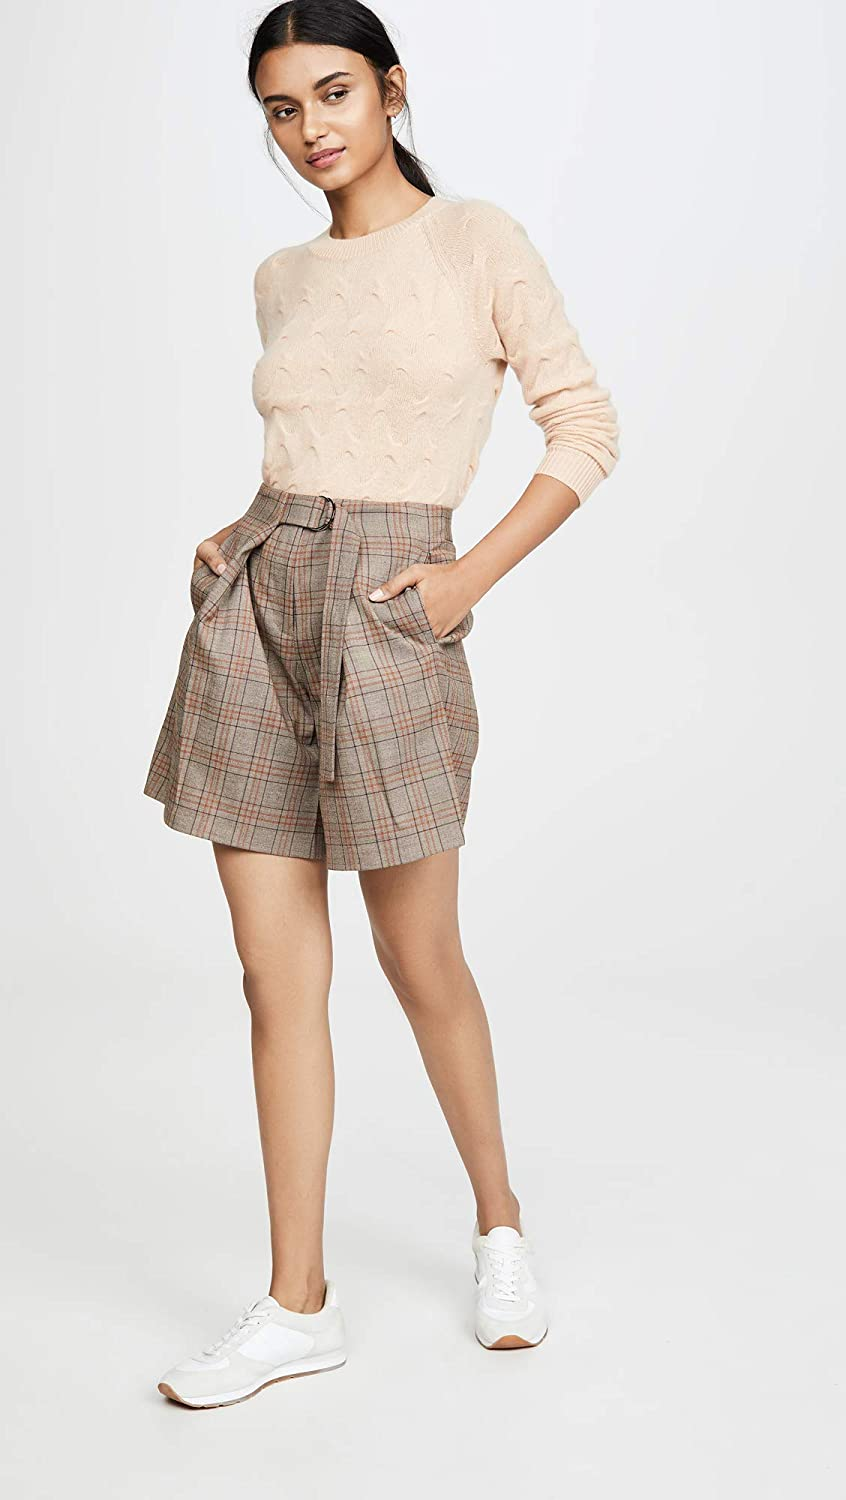 Theory Womens Tucked Cashmere Sweater